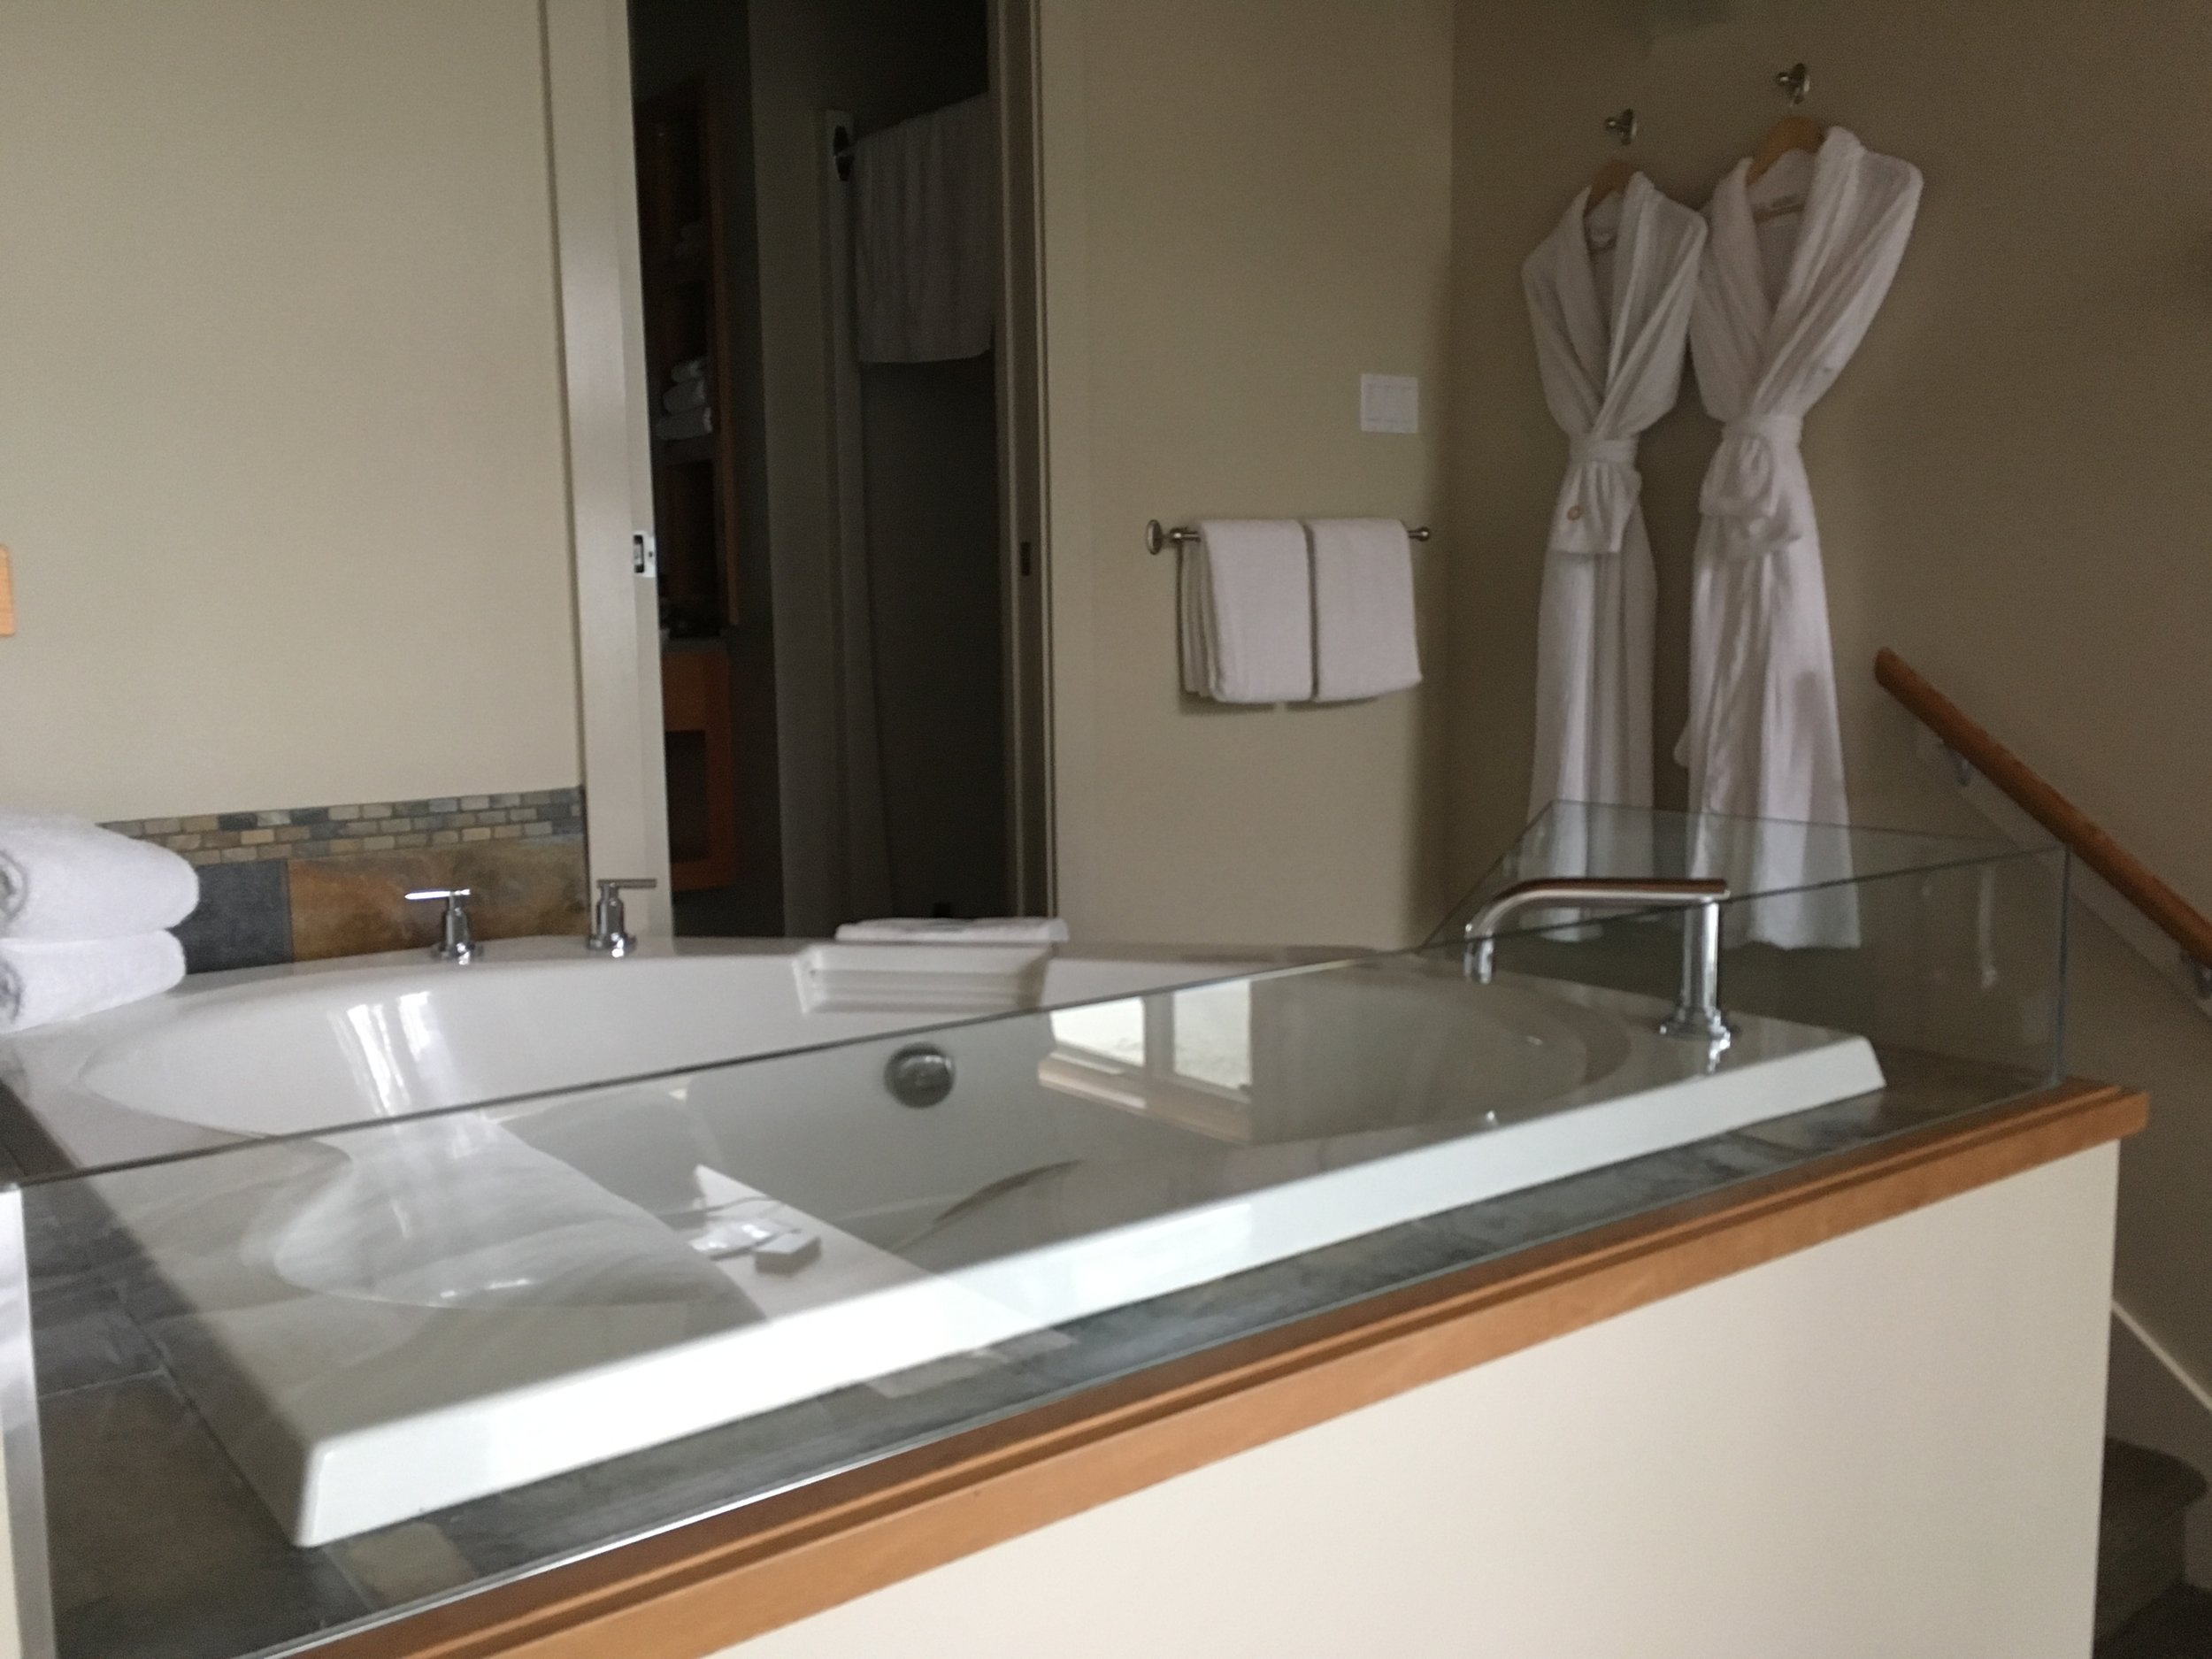 The Master Bedroom in our Beach House has a soaker tub in the bedroom